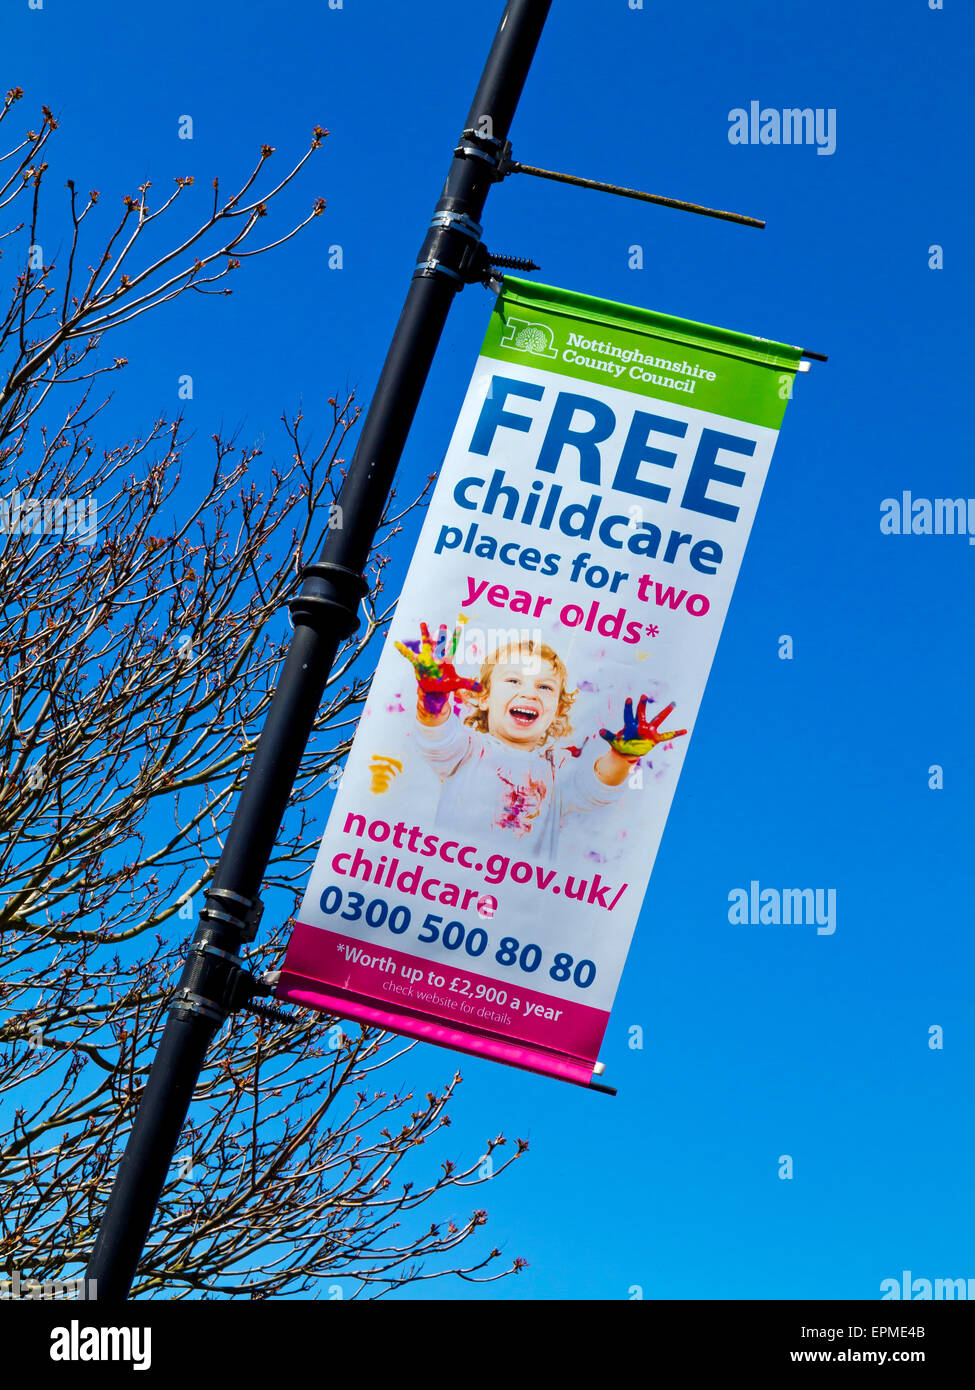 Nottinghamshire County Council Free childcare places for two year olds banner on a lamp post in Newark on Trent - Stock Image